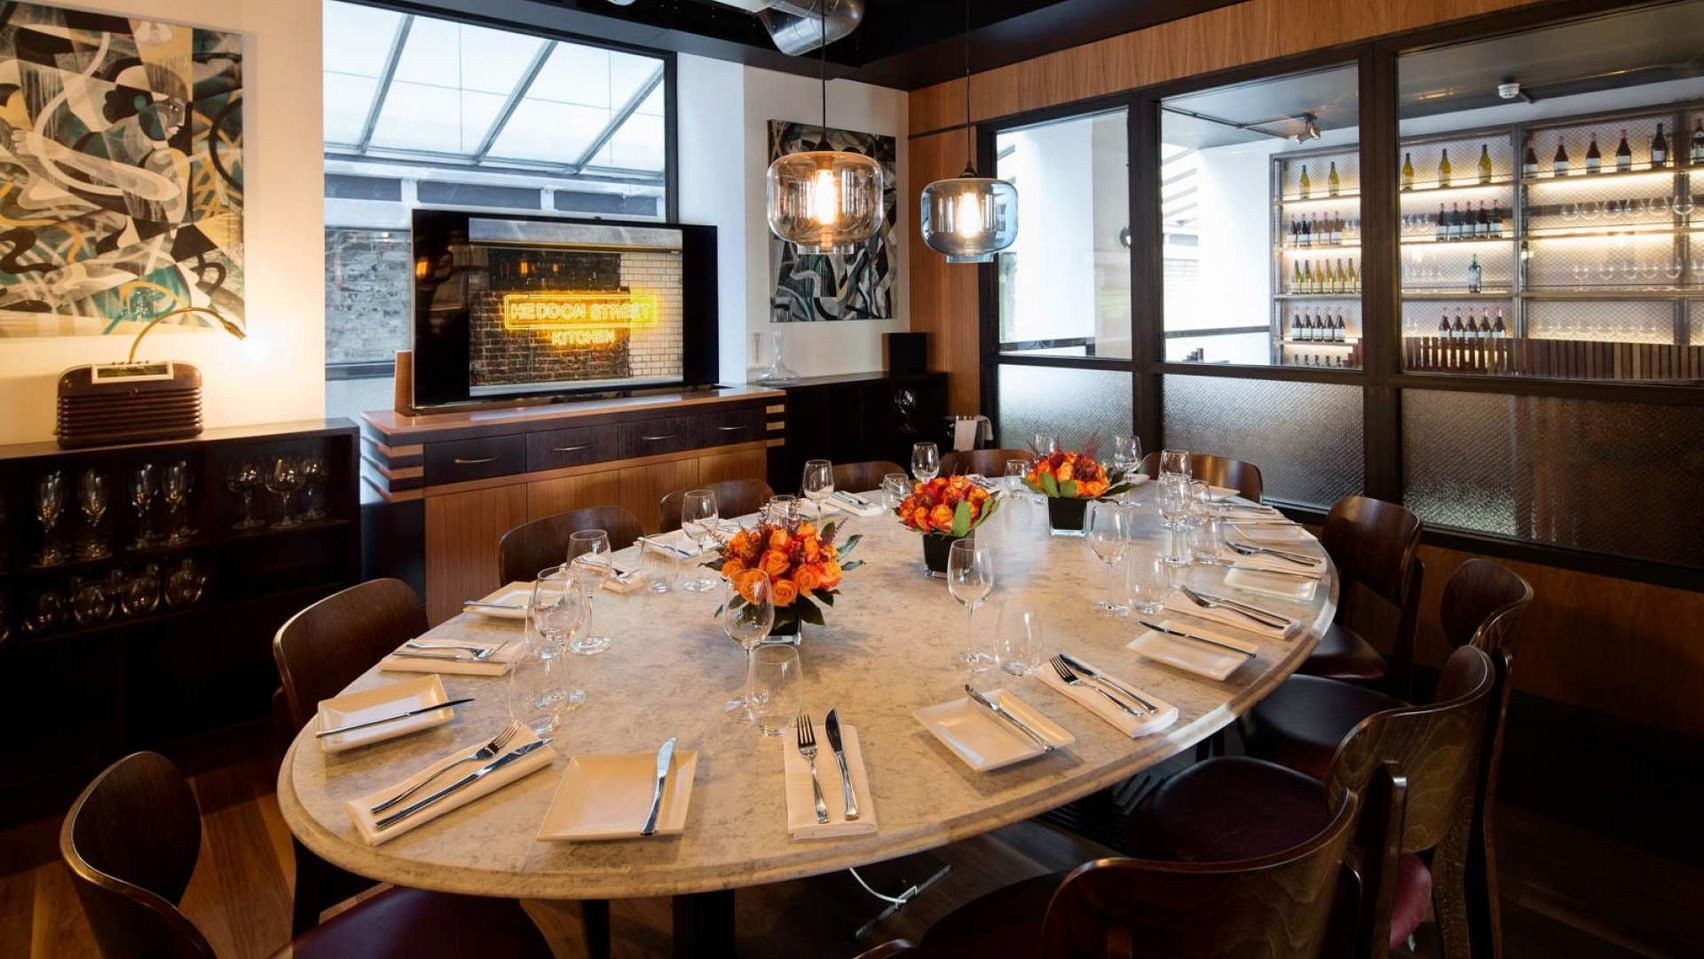 Private Dining Room, Heddon Street Kitchen